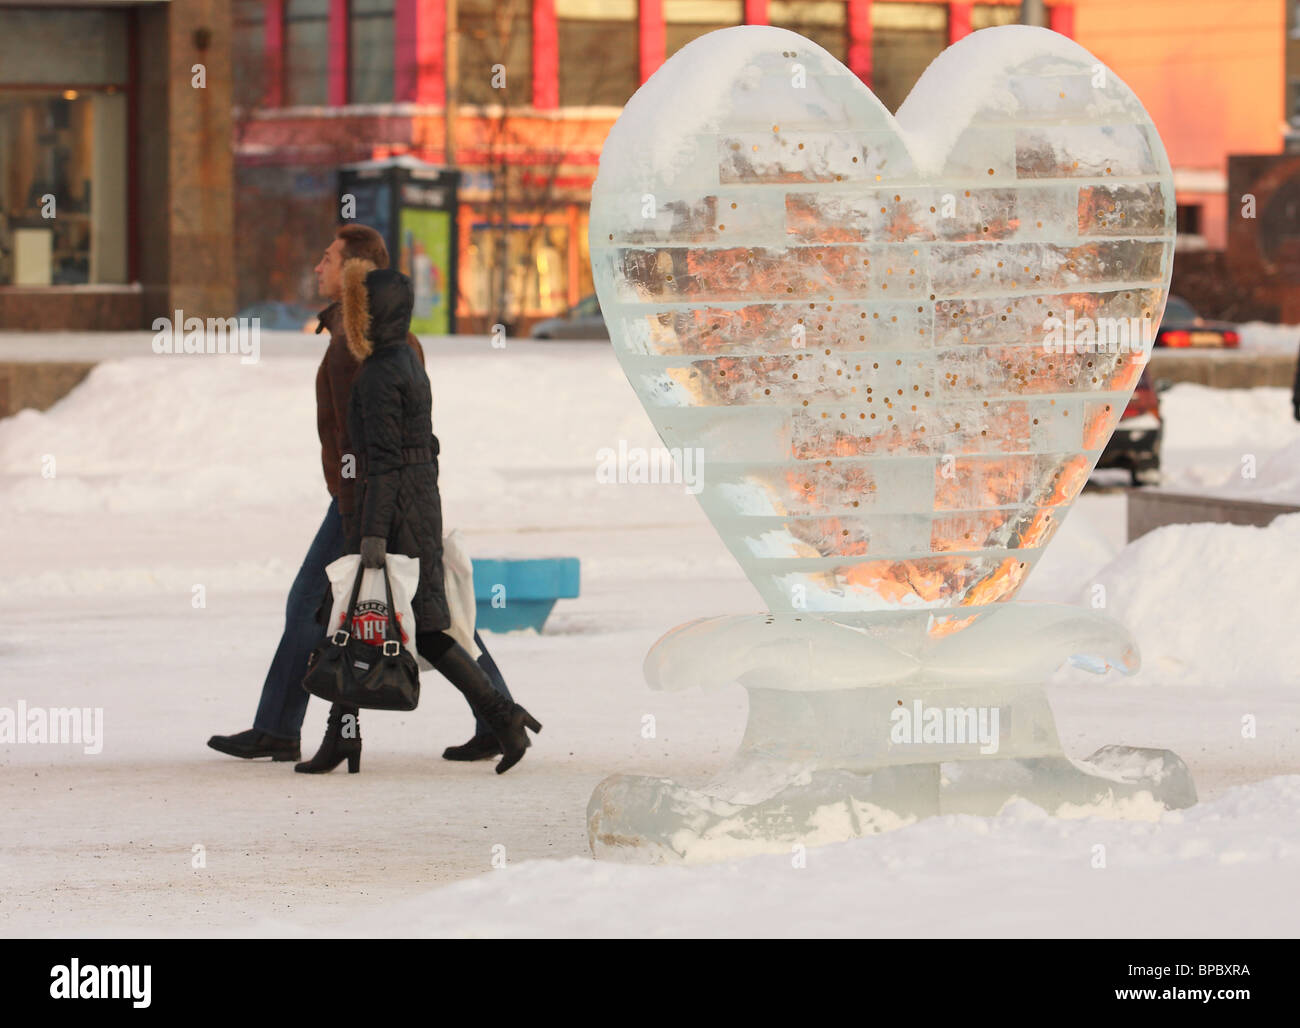 Sculpture in the form of ice heart. - Stock Image